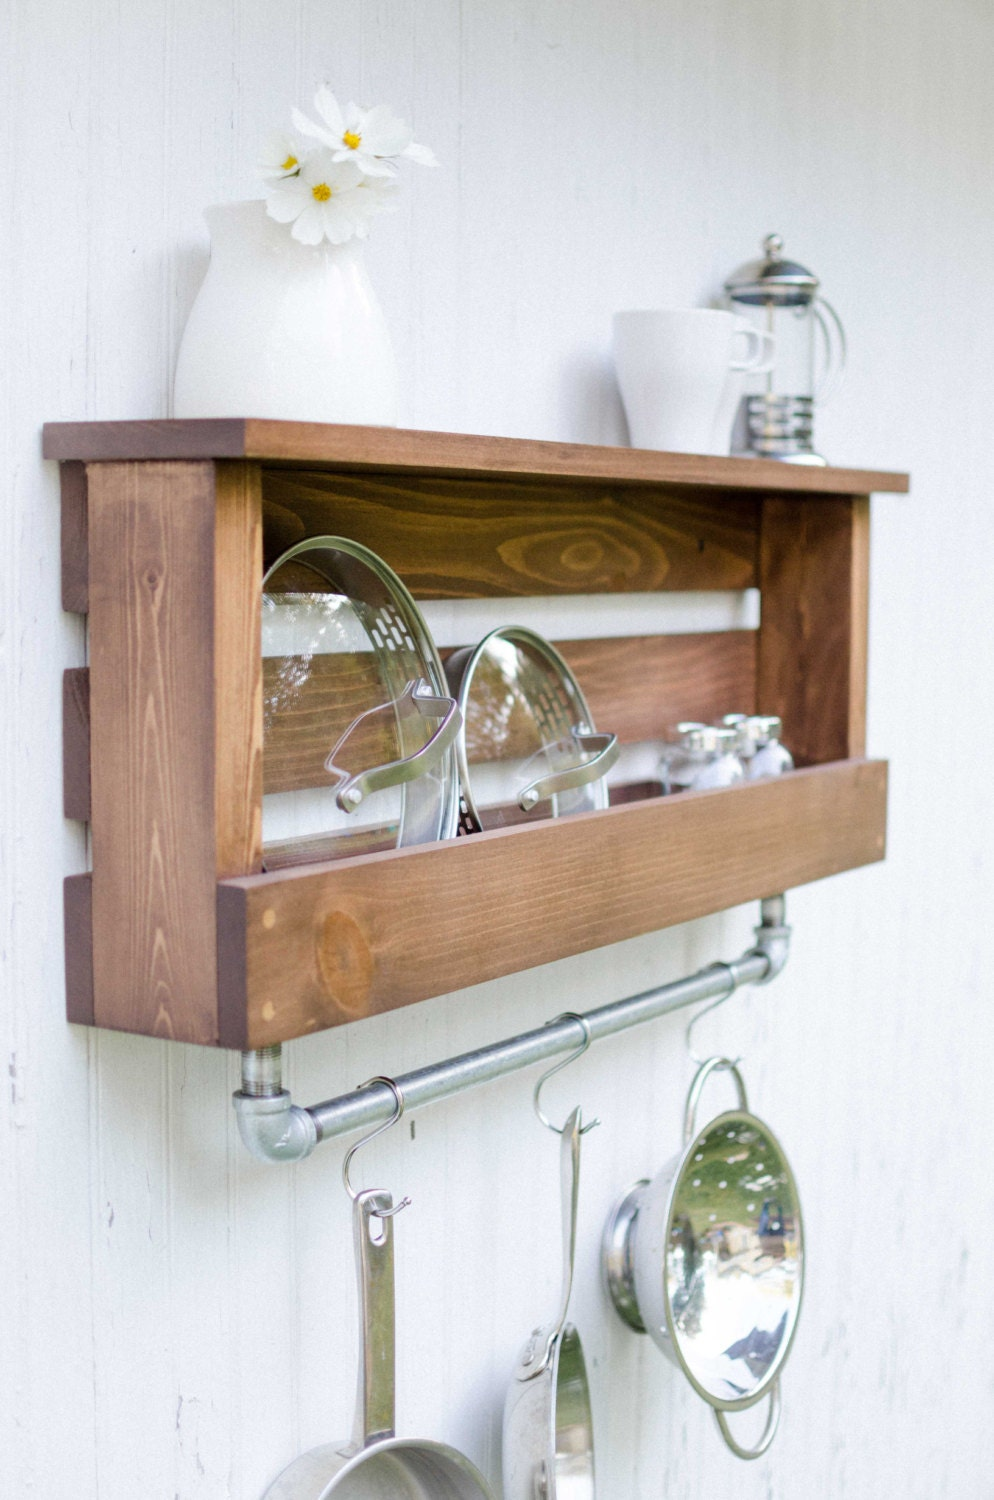 Manchester Rustic Farmhouse Industrial Shelf with Pot Rack